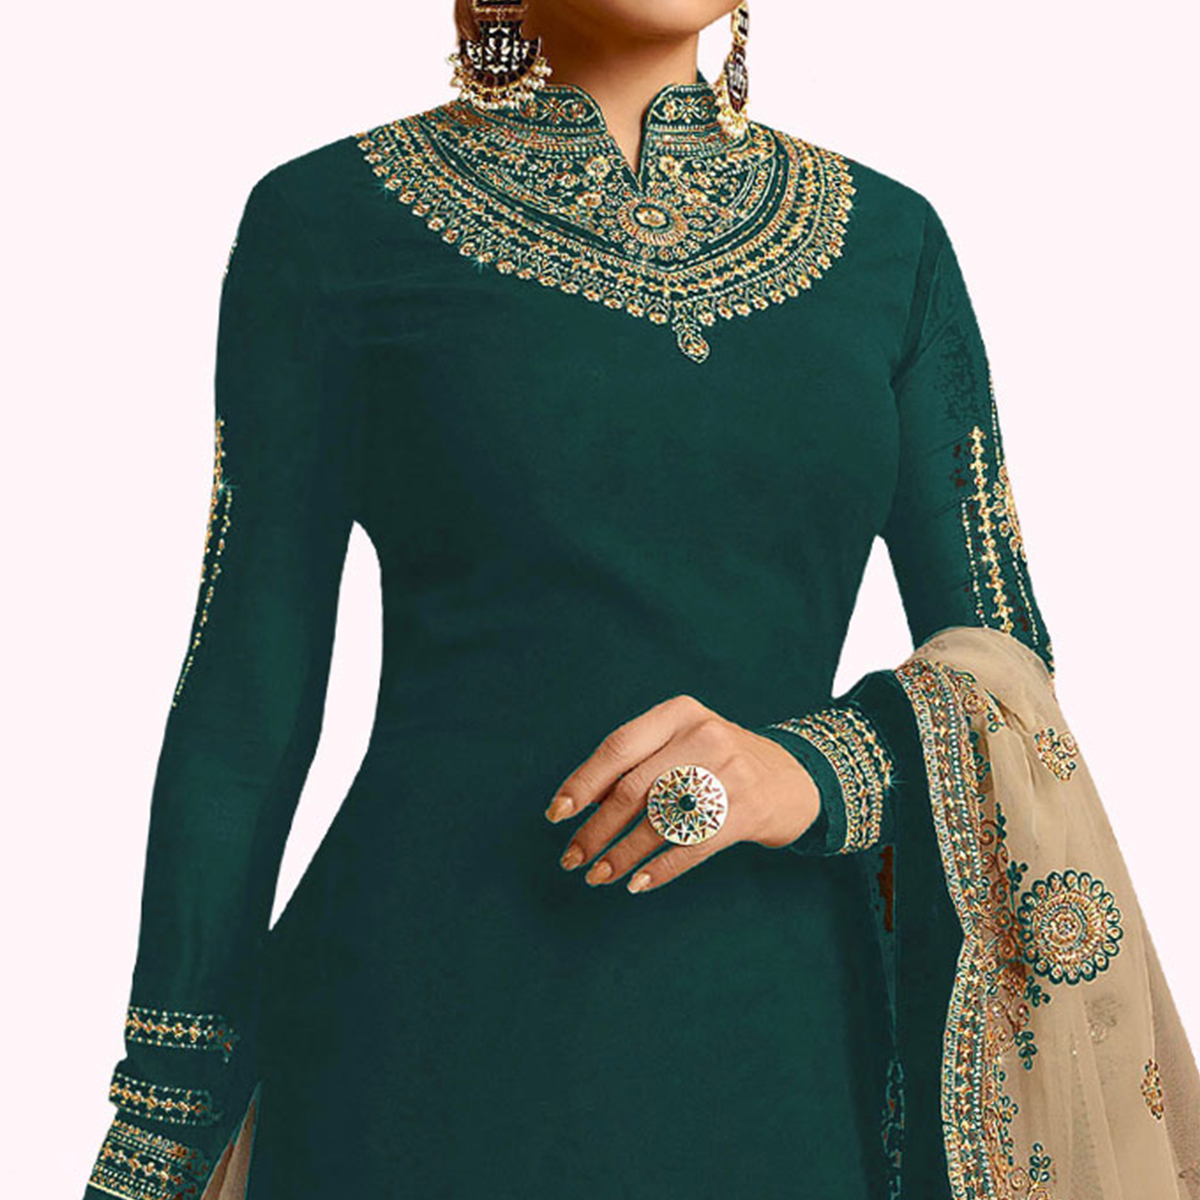 Engrossing Green Colored Partywear Embroidered Georgette Lehenga Kameez